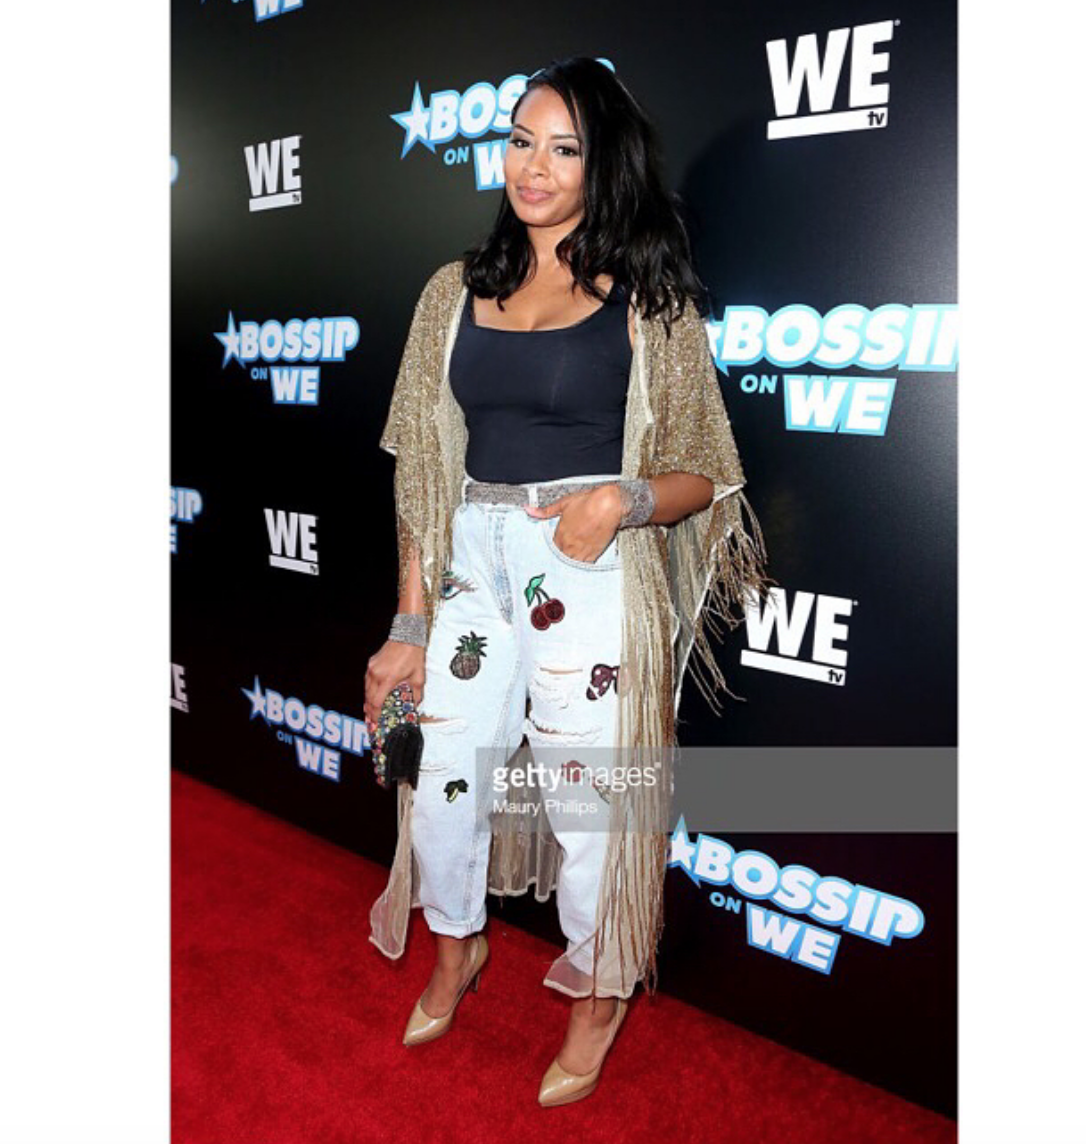 "Dazzle in glam! hip hop royalty and  @wetv  star from hit tv show  @growinguphiphop  @vanessajsimmons  strikes the ""best dressed"" list for the  @bossip_wetv  red carpet wearing our designers  #star  @metamorfusnow   @liquidmetalcollection  @ottavianiofficial   @rougebyroojamir fashion and style provided by  #ivanbittonstylehouse"